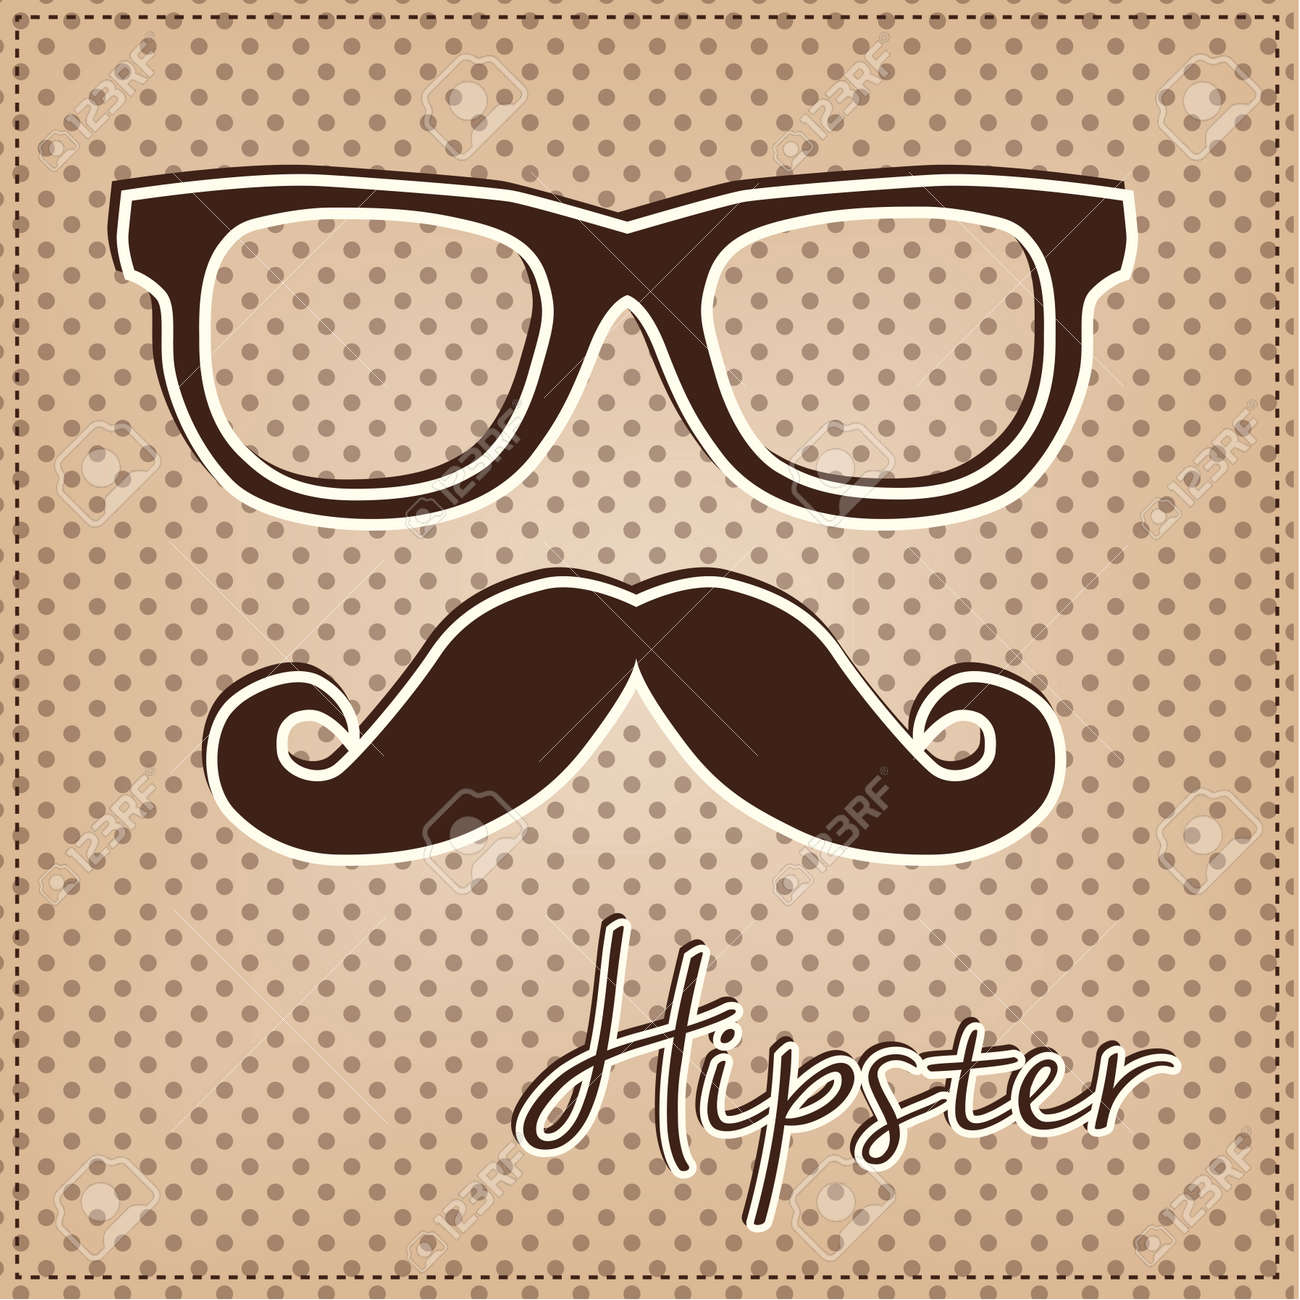 d71452280 Eye glasses and mustache, vintage or retro hipster elements on polka dot  background, vector